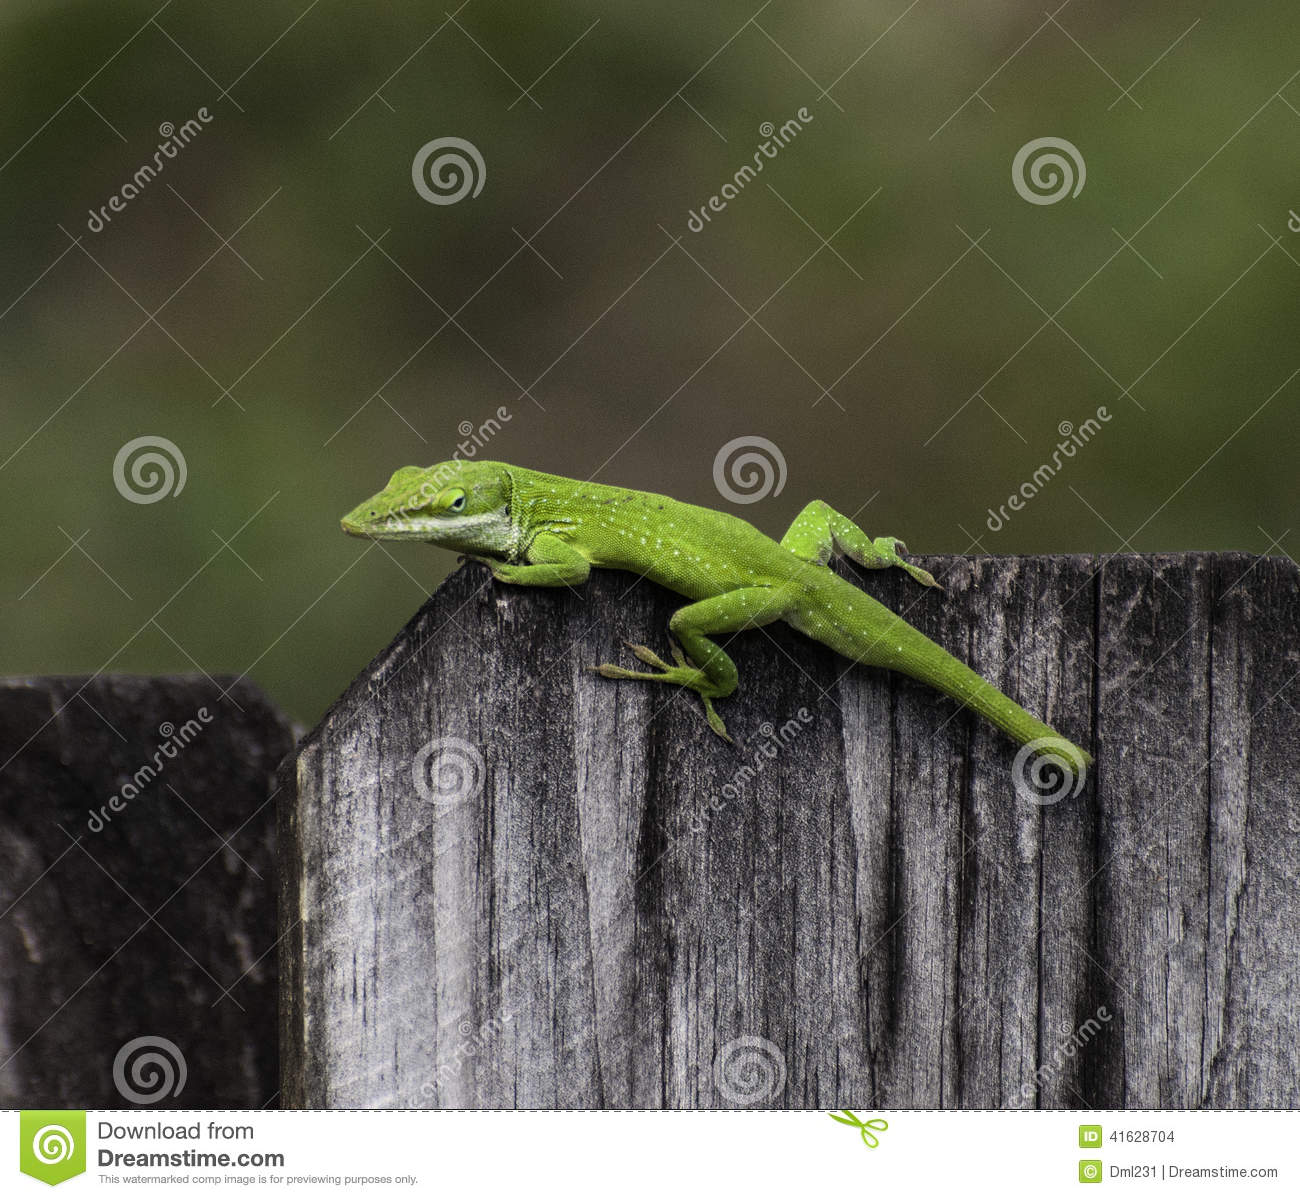 Bright Green Anole on Wood Fence